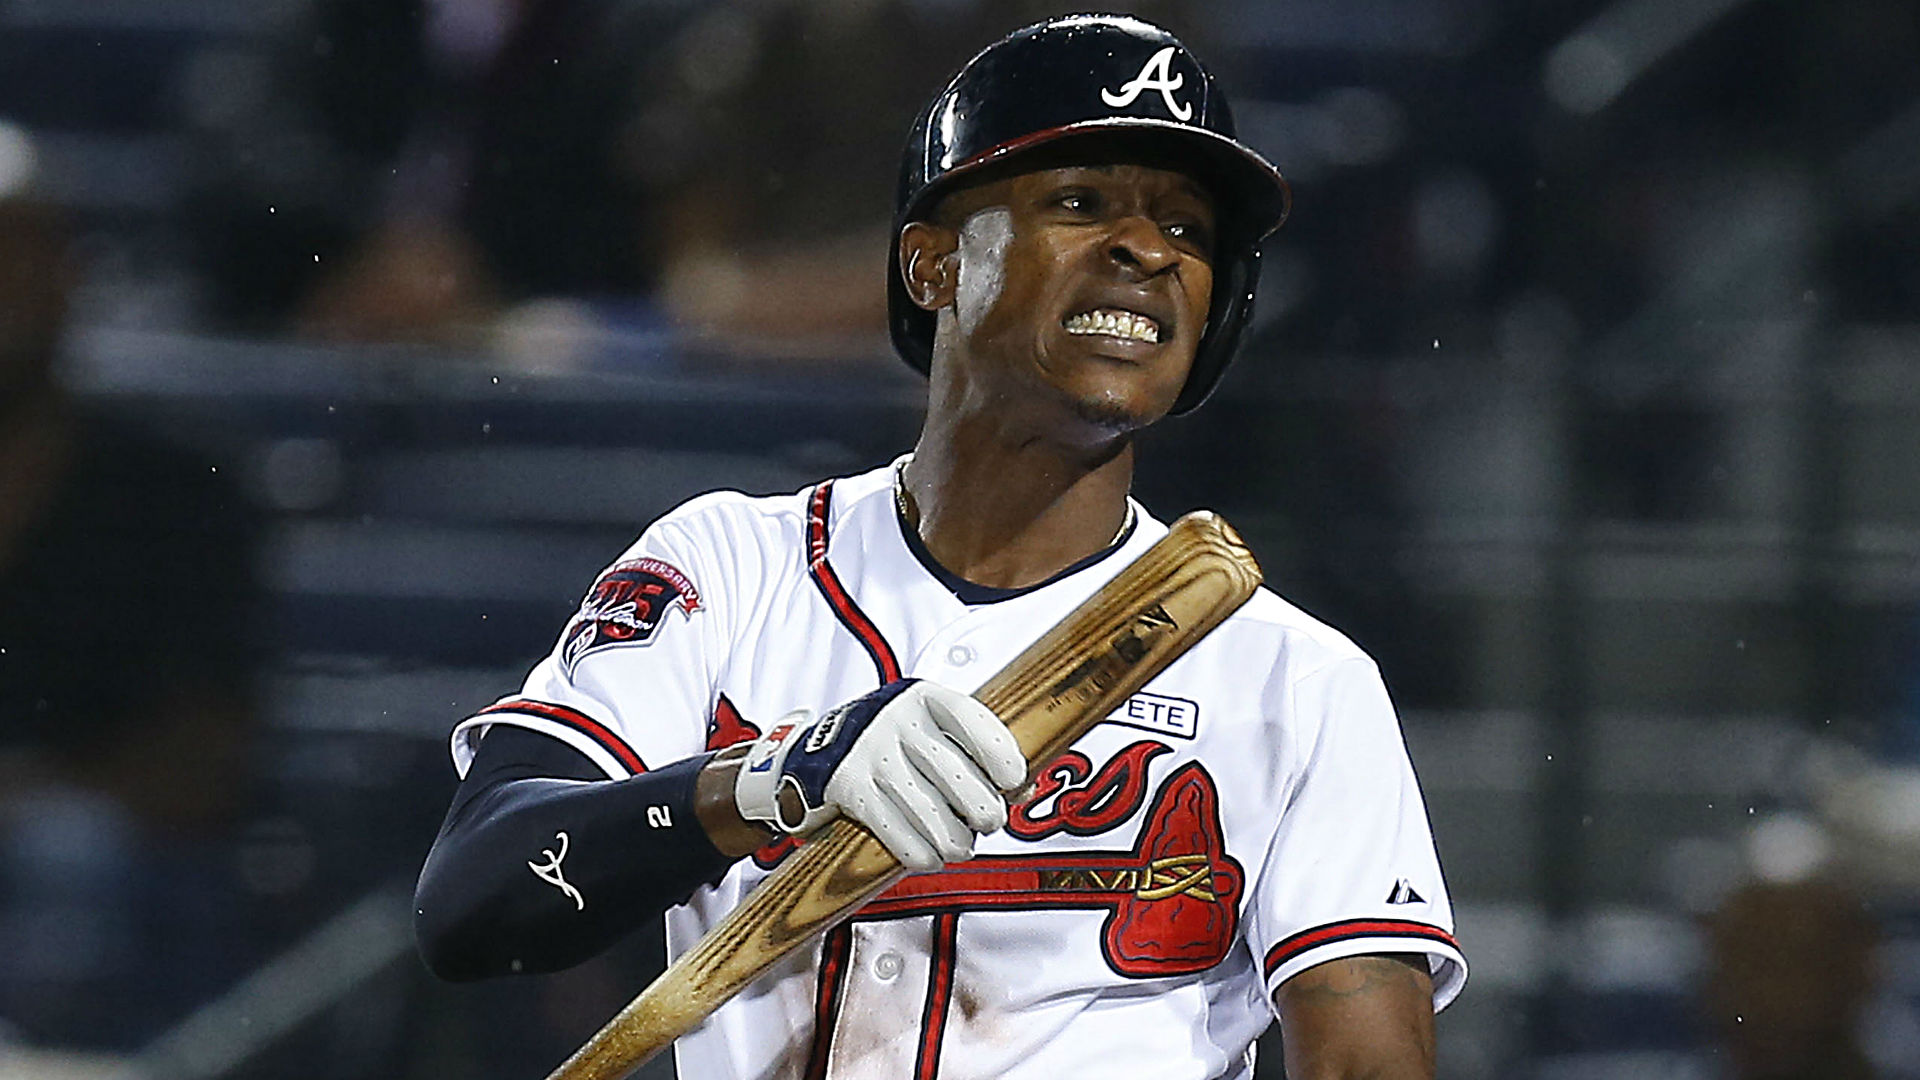 The man now known as Melvin Upton Jr.